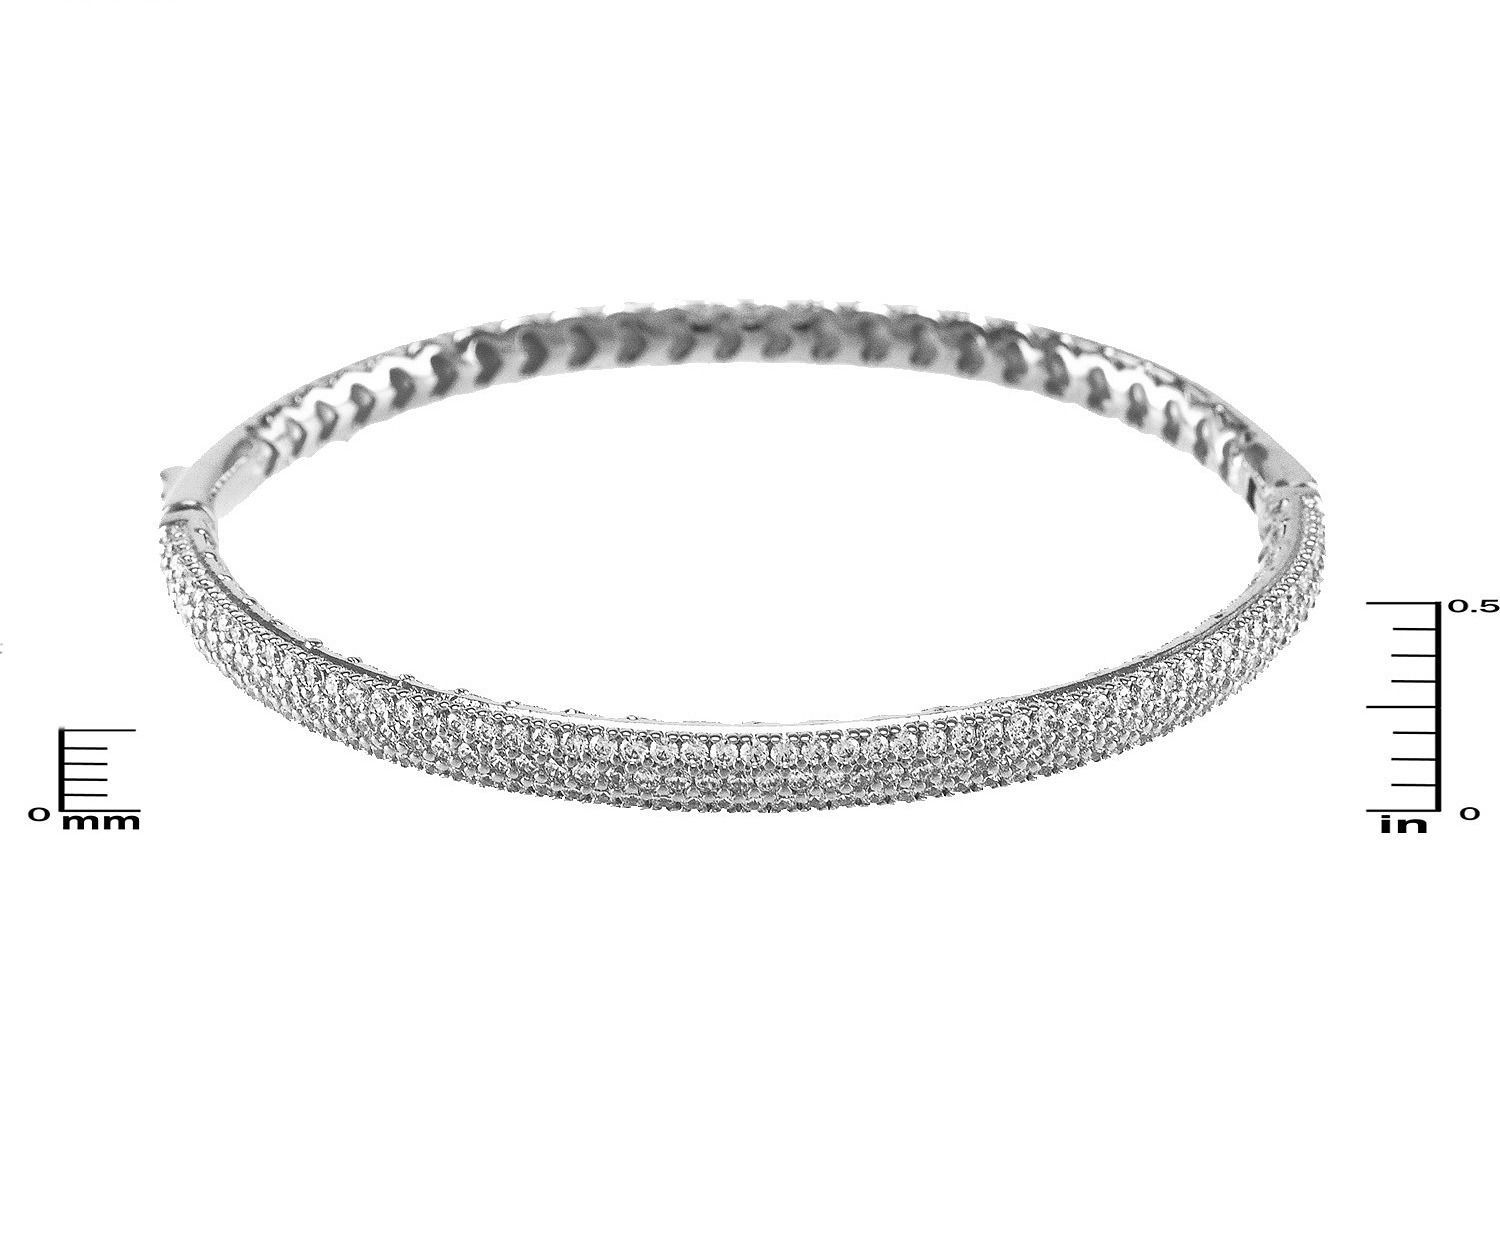 Glitzy Pave AAA Cubic Zirconia Dome Shape Textured Rhodium Bangle Bracelet